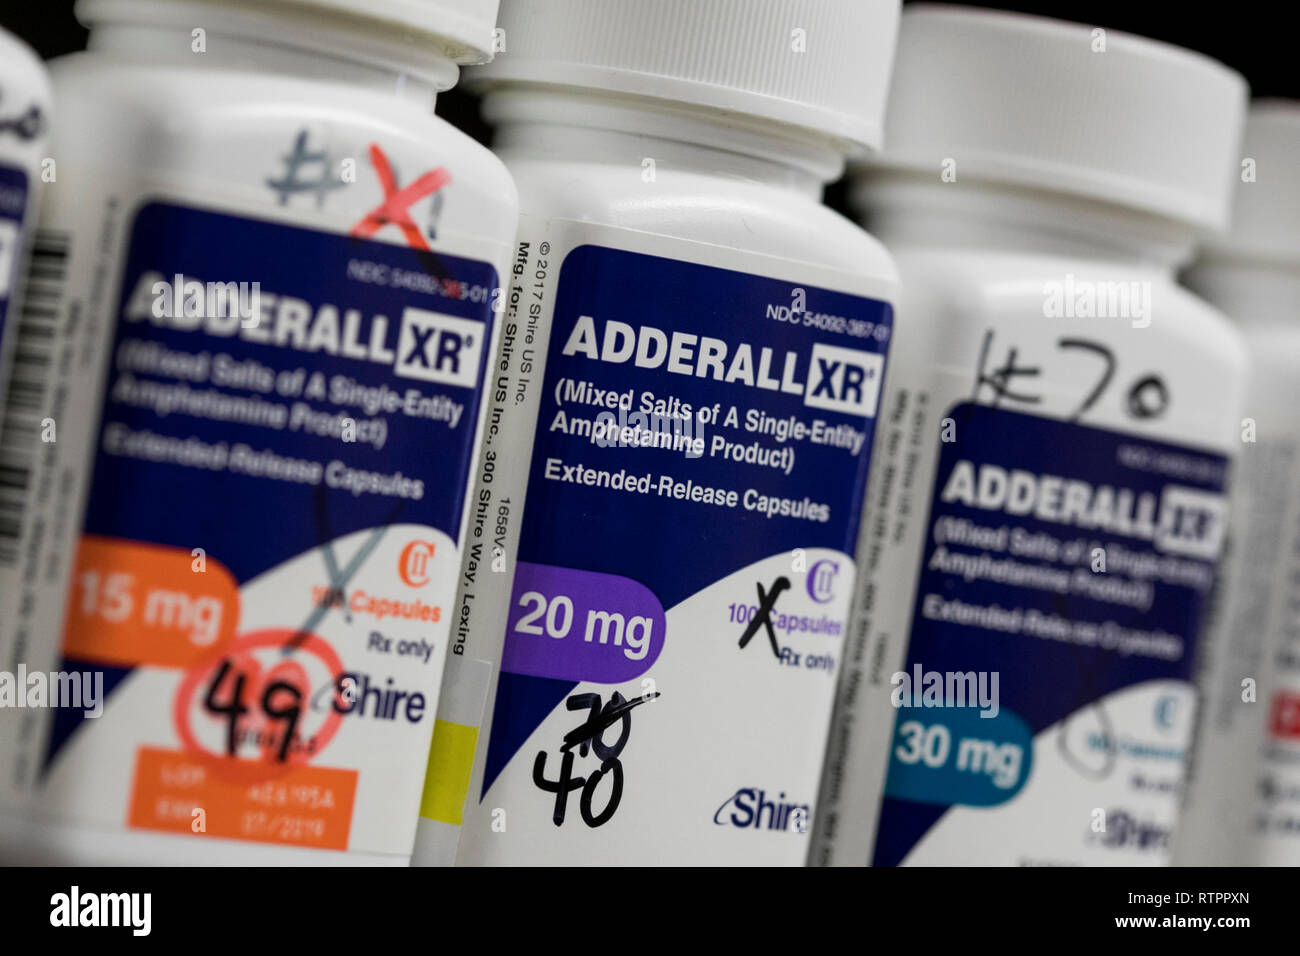 Bottles of Adderall XR prescription pharmaceuticals photographed in a pharmacy. - Stock Image